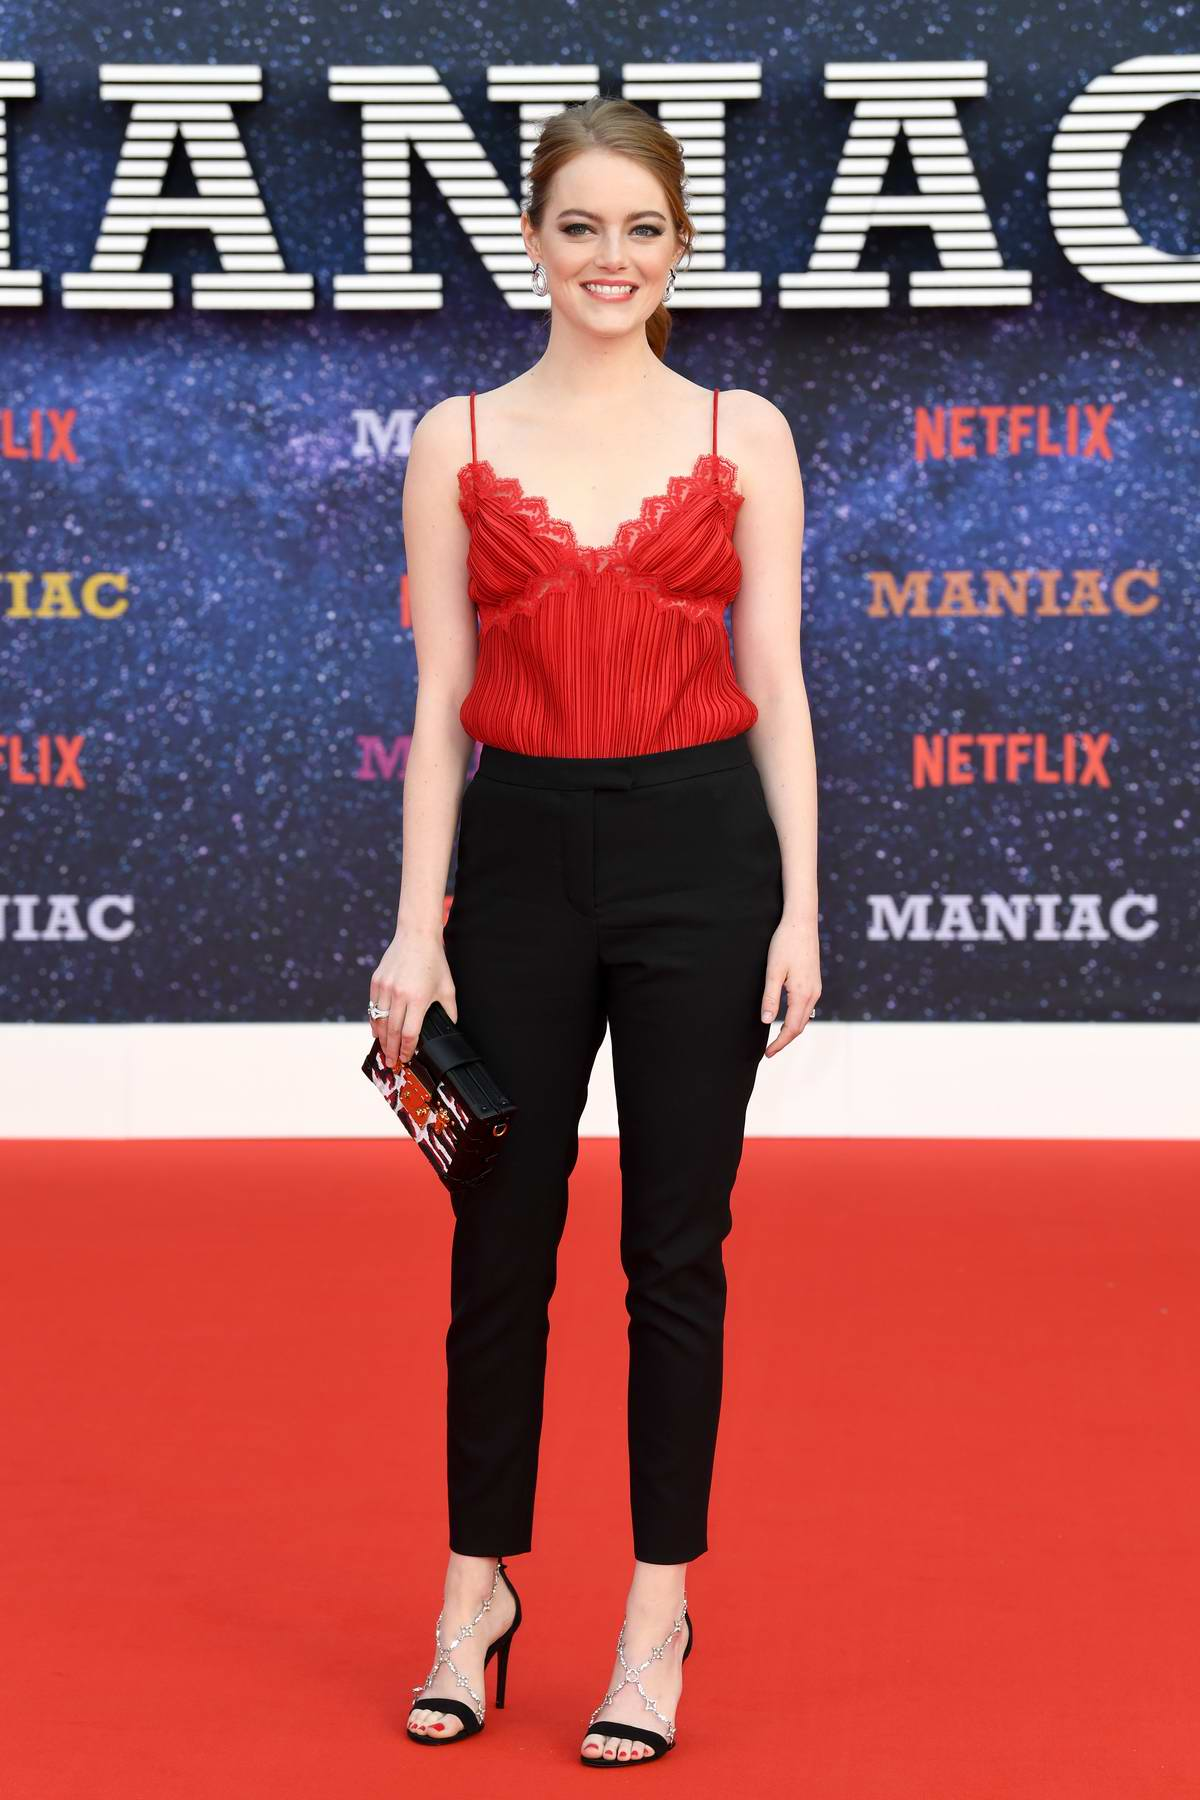 Emma Stone attends 'Maniac' World Premiere at Southbank Centre in London, UK